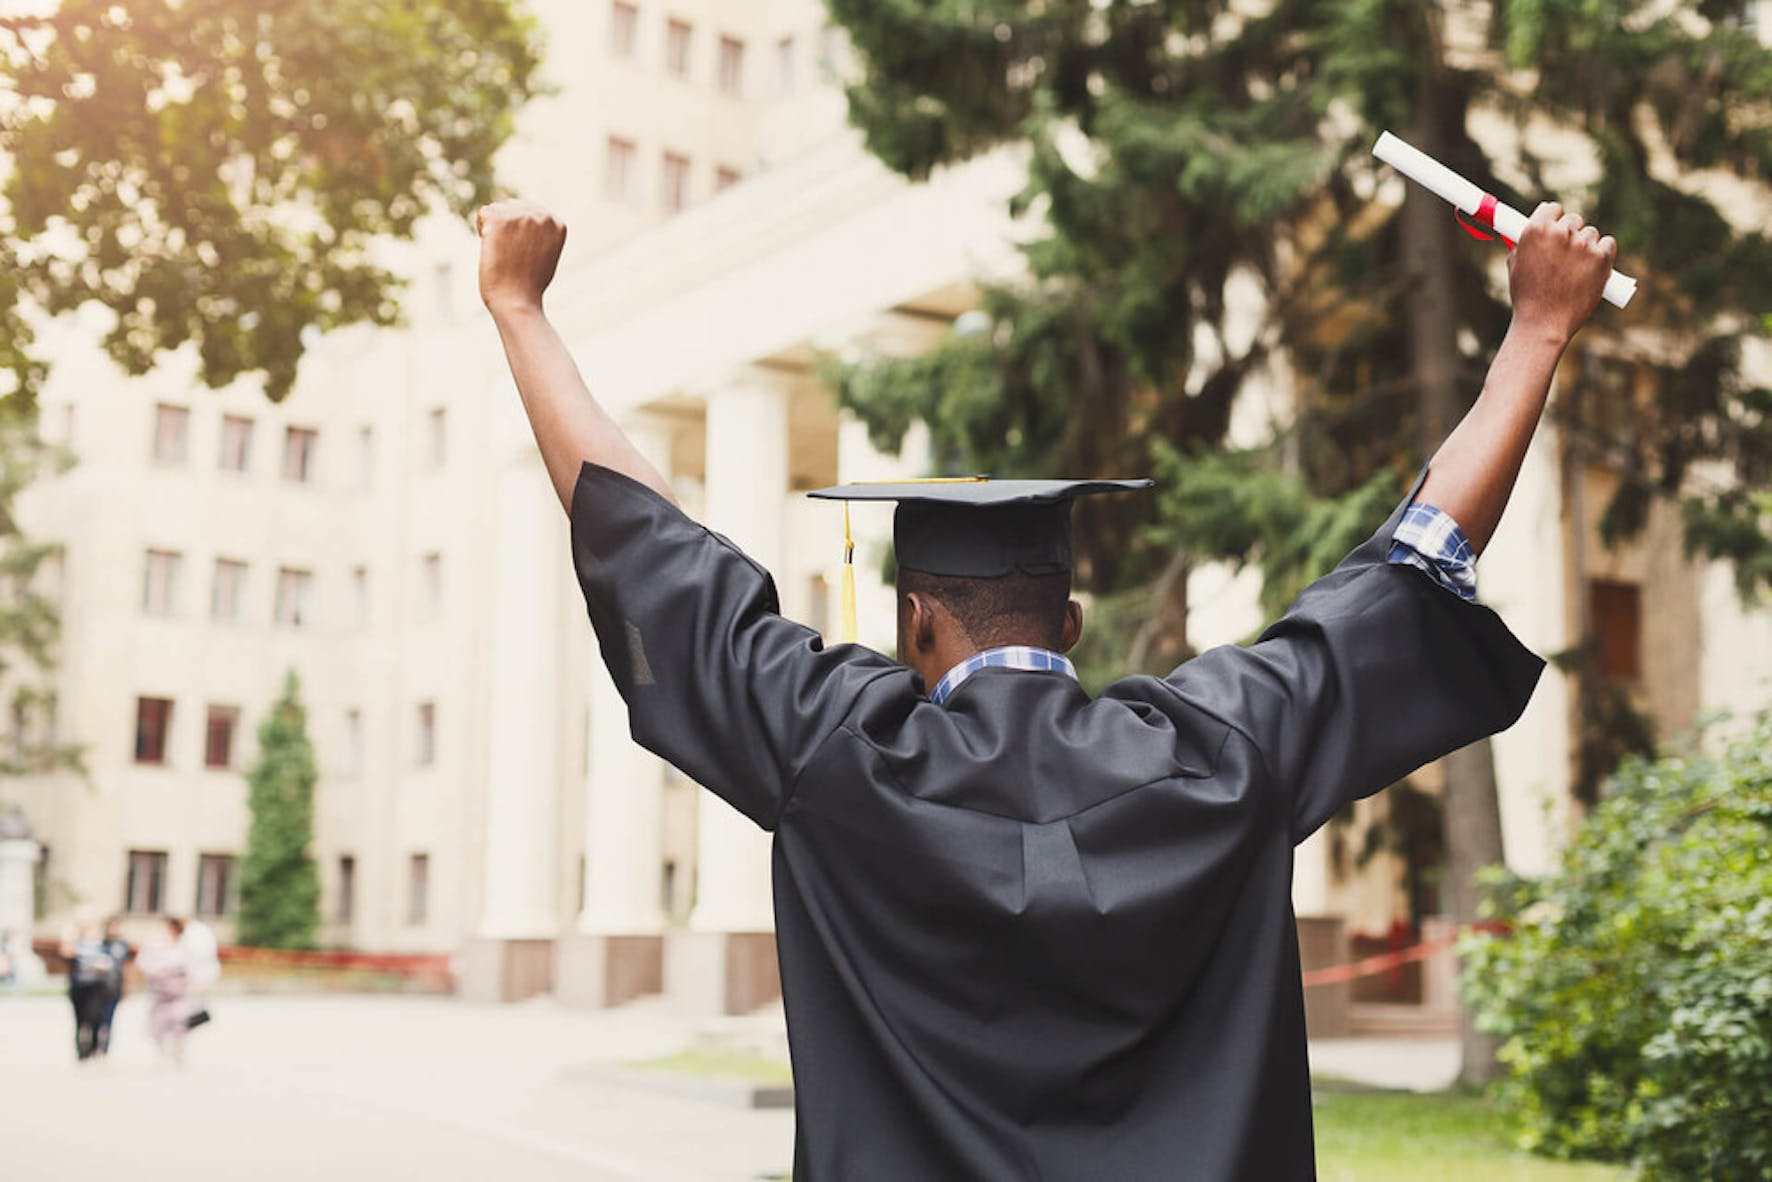 College graduate wearing a cap and gown holding his degree with his hands in the air